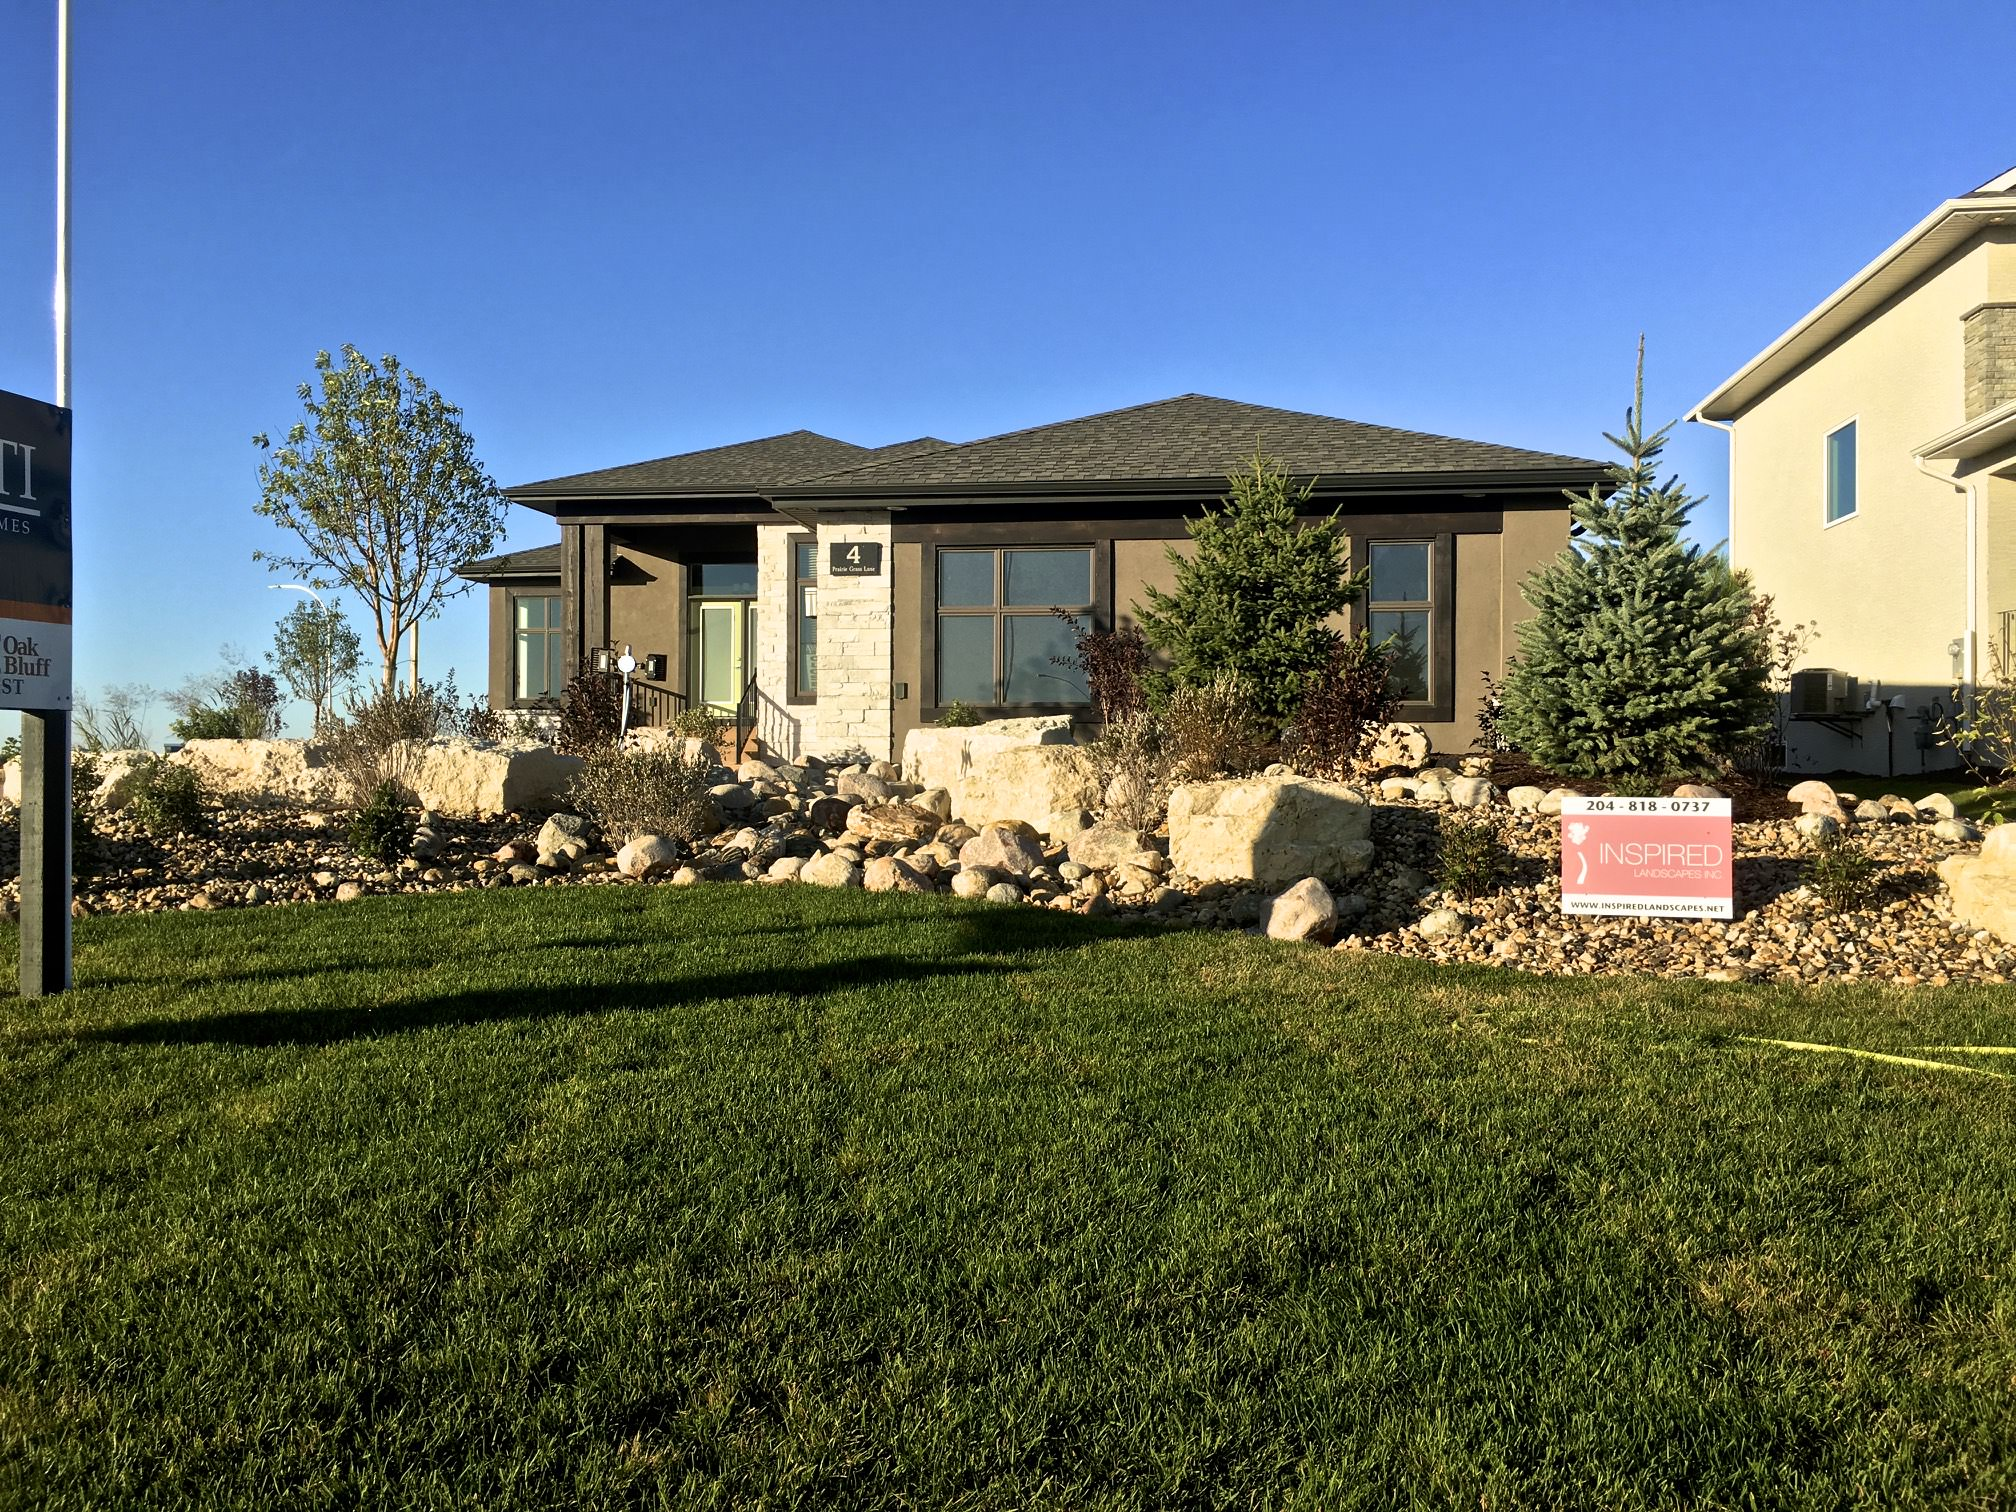 Parade of homes Winnipeg landscaping